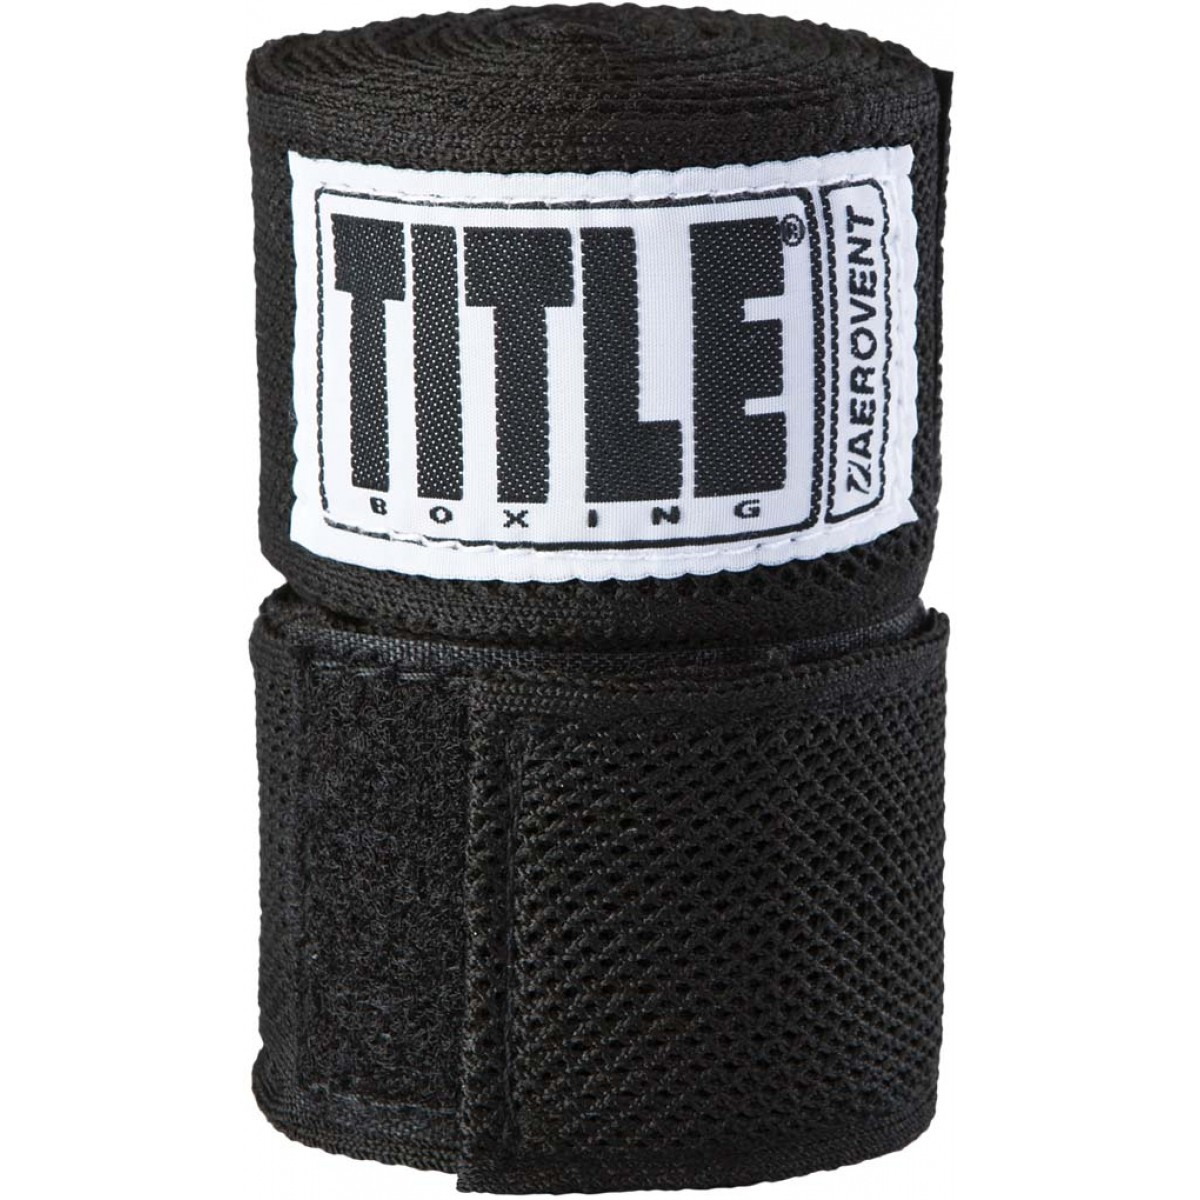 "Title Boxing Aerovent Xtreme Wicking Spandex Blend 120"" Handwraps - Black"